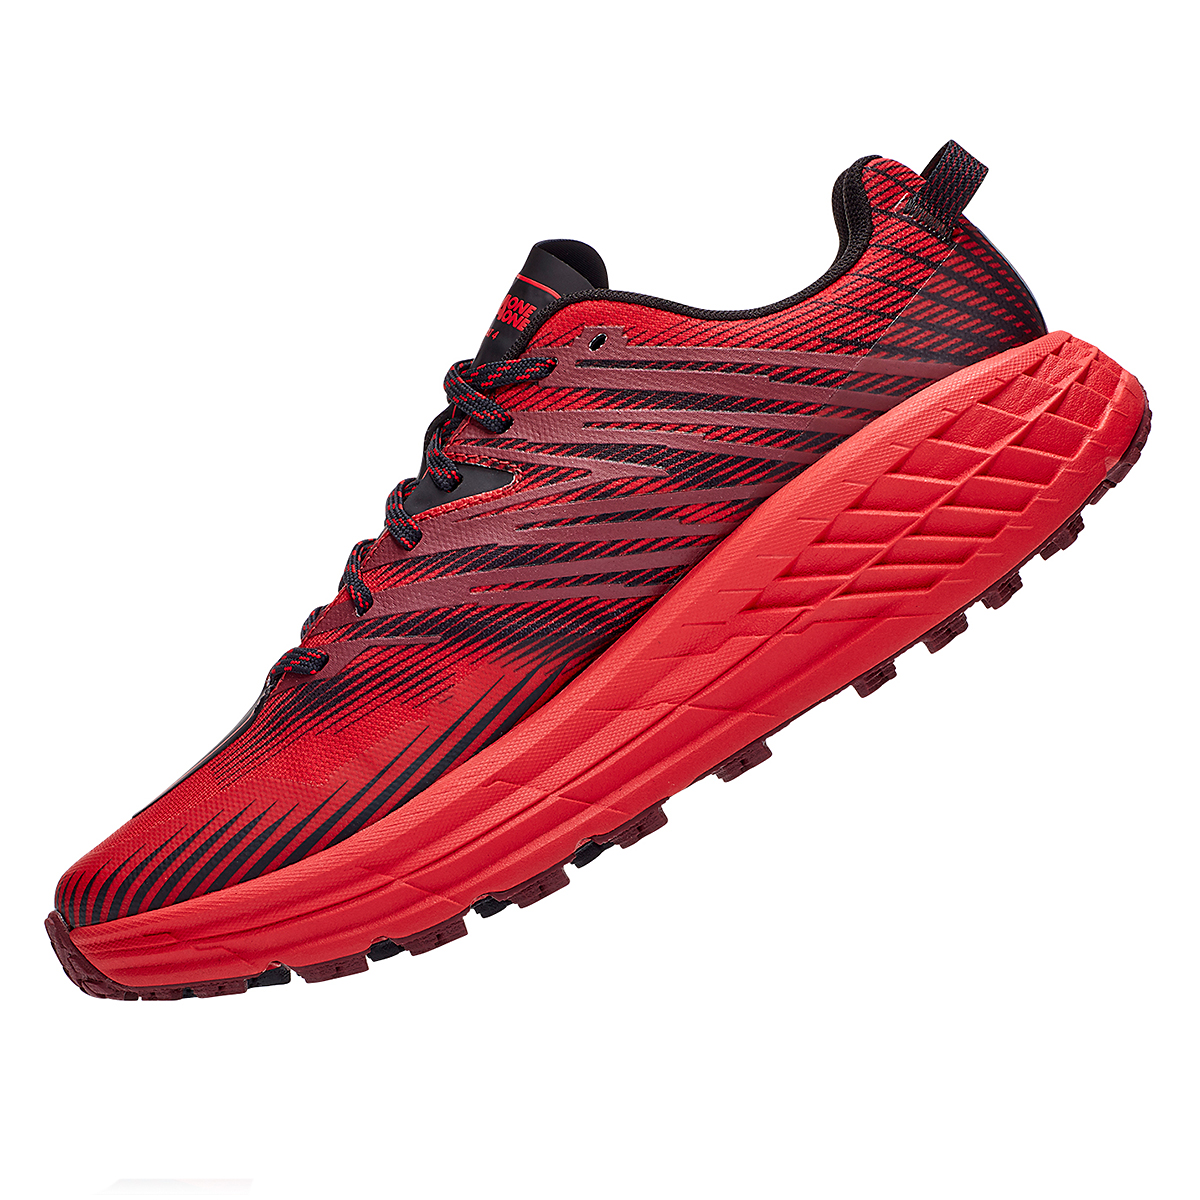 Men's Hoka One One Speedgoat 4 Trail Running Shoe - Color: Cordovan/High Risk Red - Size: 7 - Width: Regular, Cordovan/High Risk Red, large, image 5